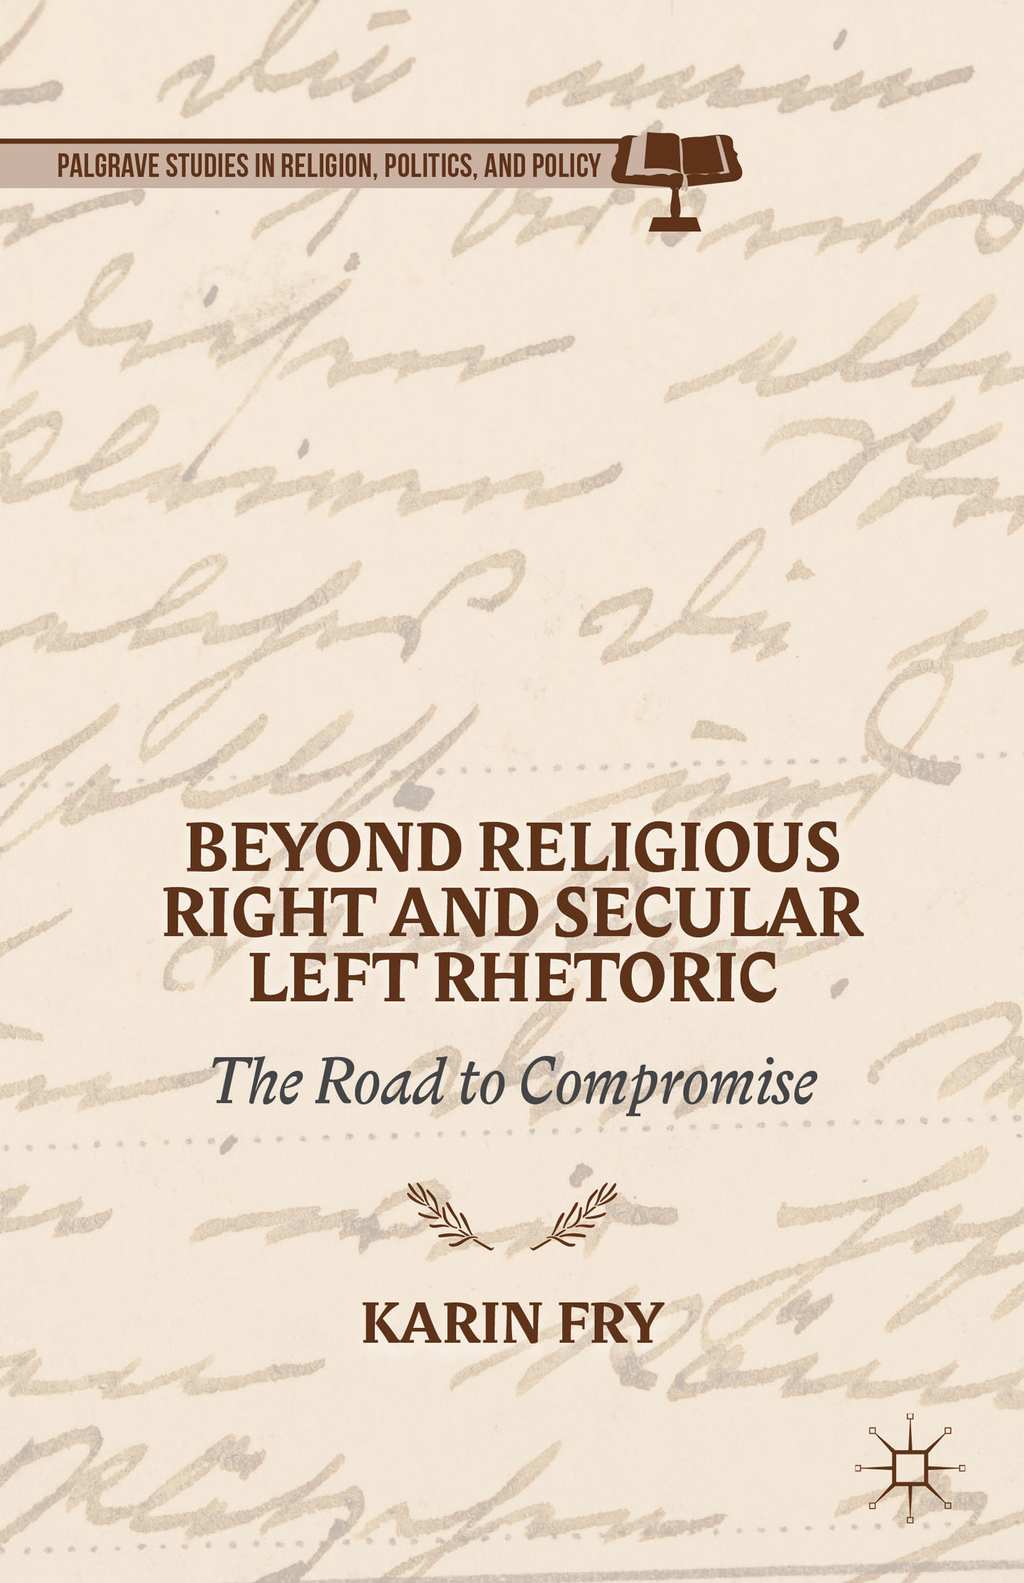 Beyond Religious Right and Secular Left Rhetoric The Road to Compromise